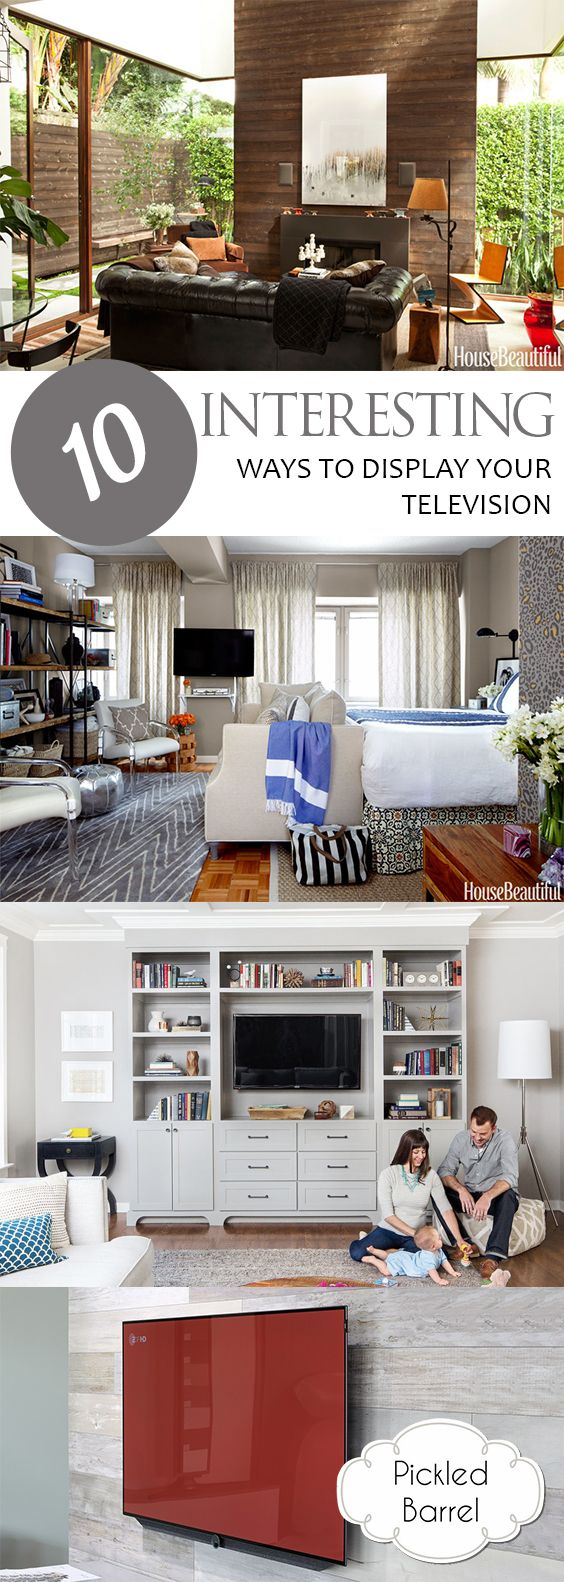 10 Interesting Ways To Display Your Television